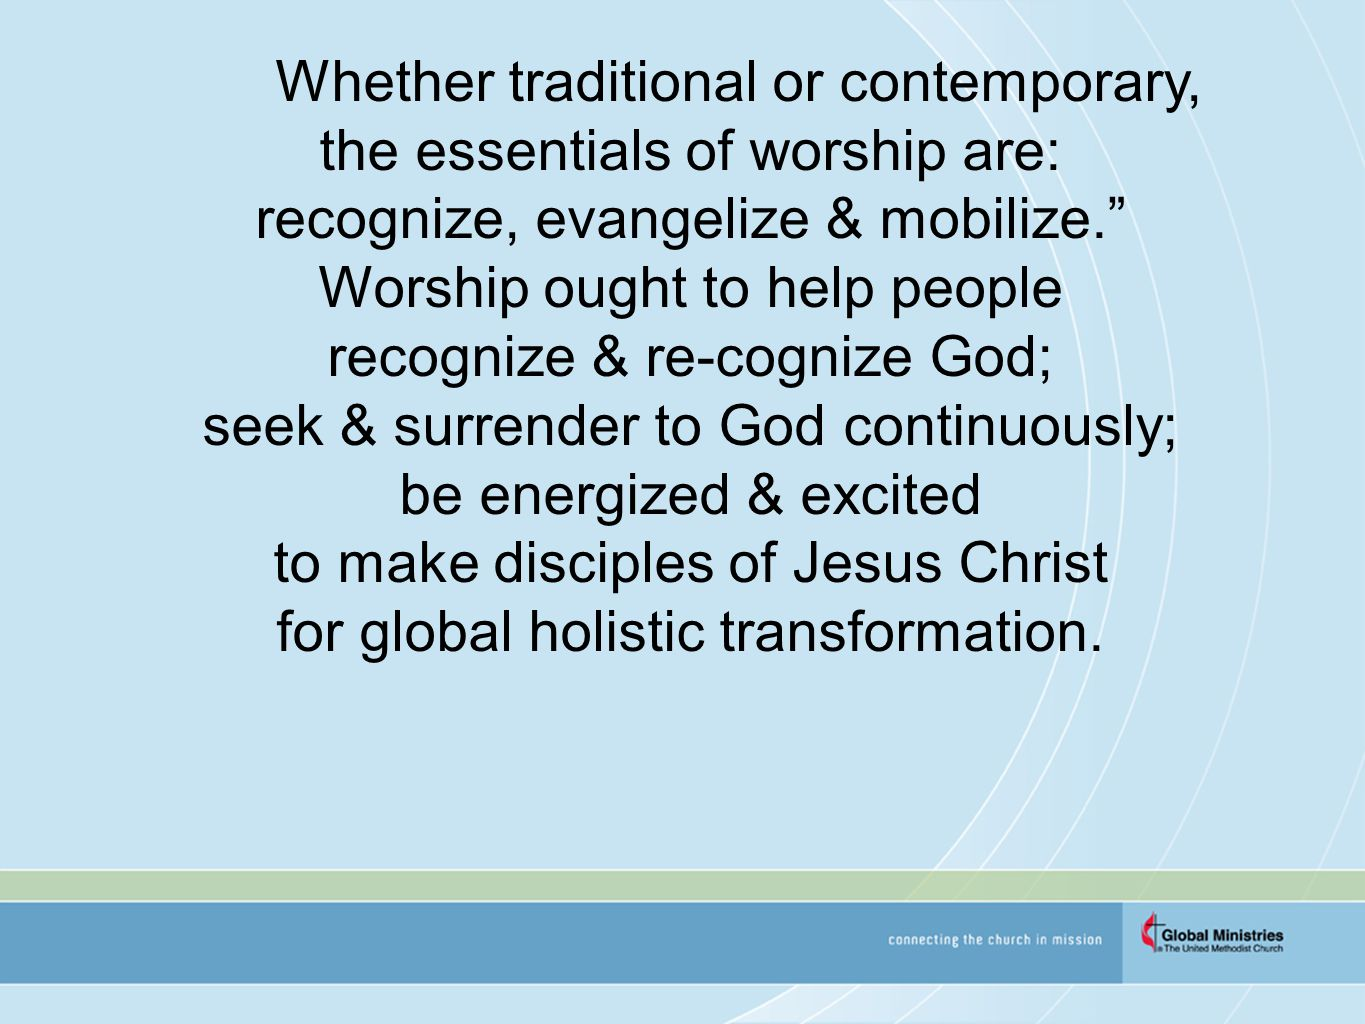 Whether traditional or contemporary, the essentials of worship are: recognize, evangelize & mobilize. Worship ought to help people recognize & re-cognize God; seek & surrender to God continuously; be energized & excited to make disciples of Jesus Christ for global holistic transformation.